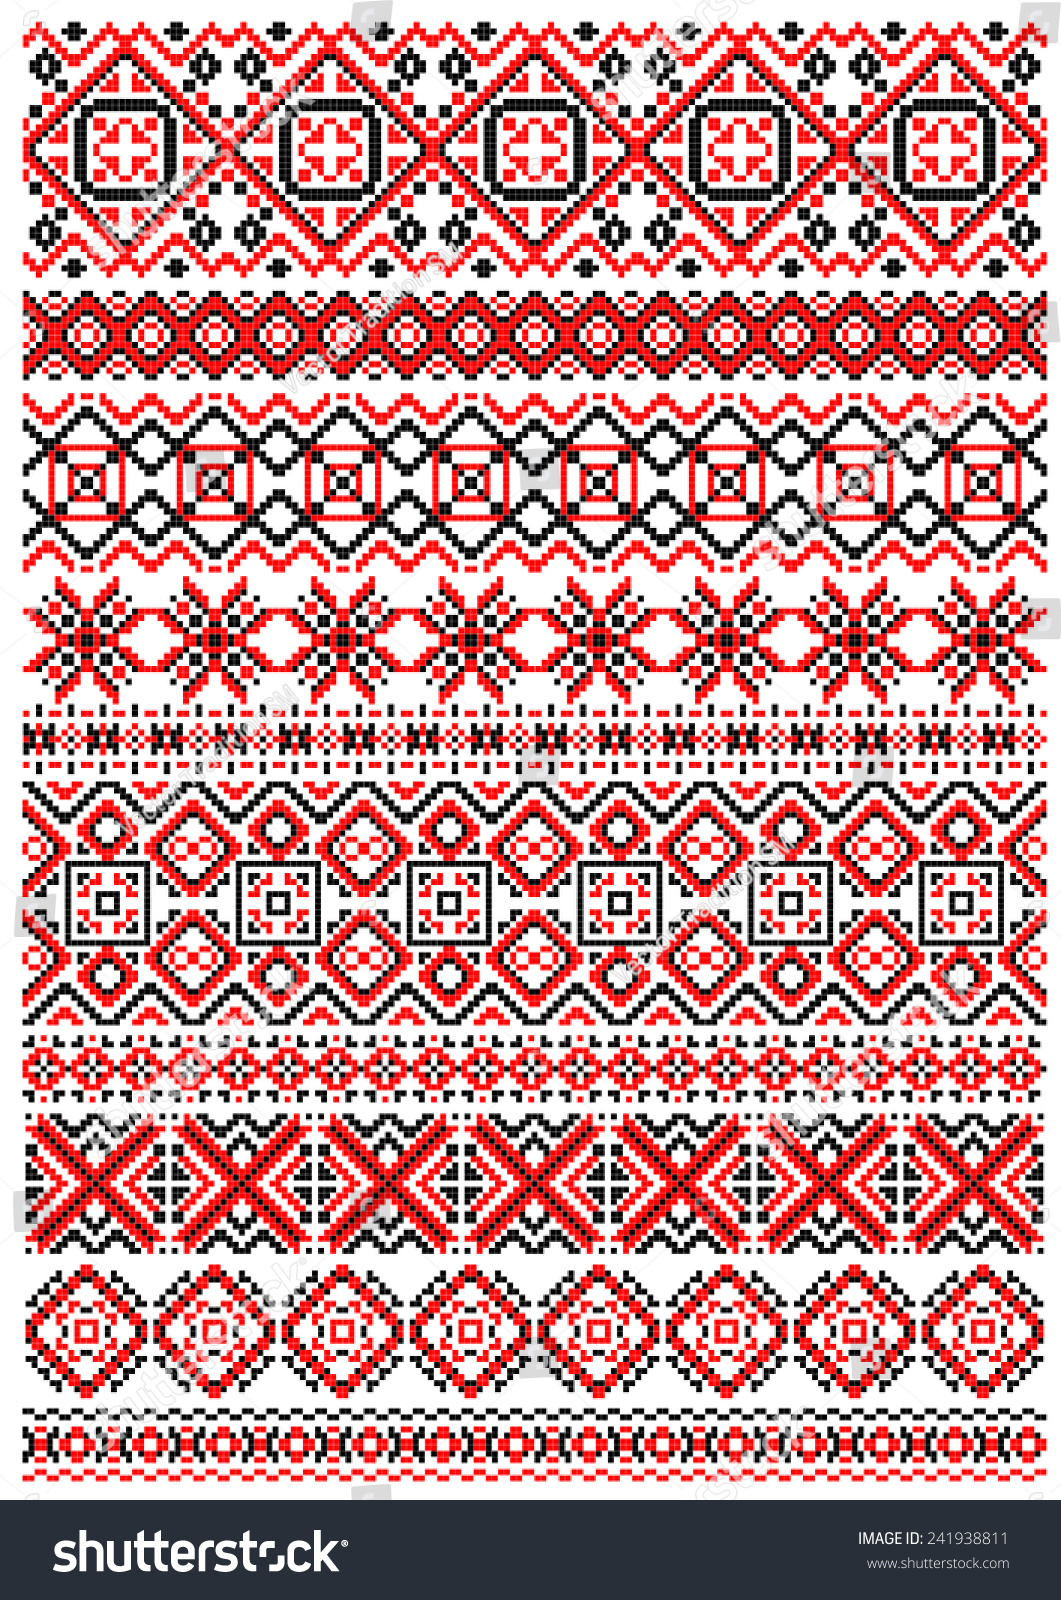 Geometric embroidery pattern in folk style with red black